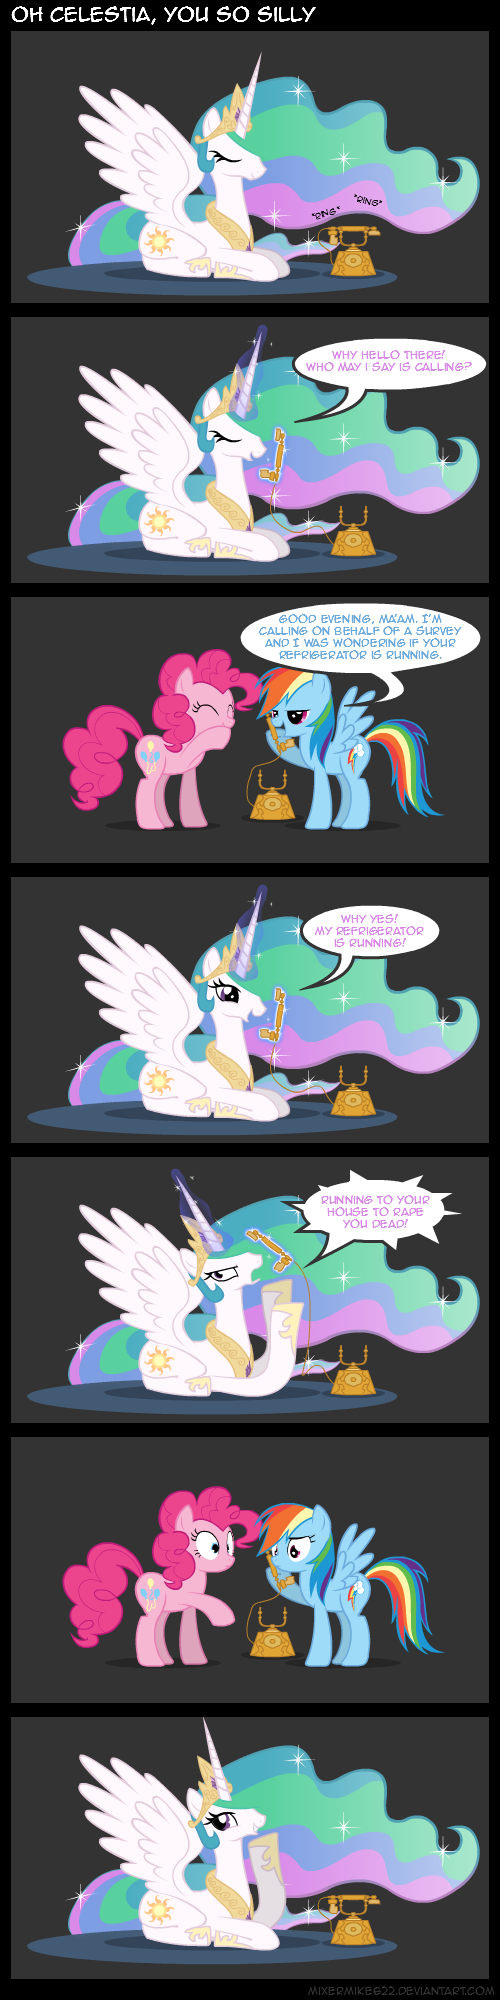 Silly Celestia by Mixermike622